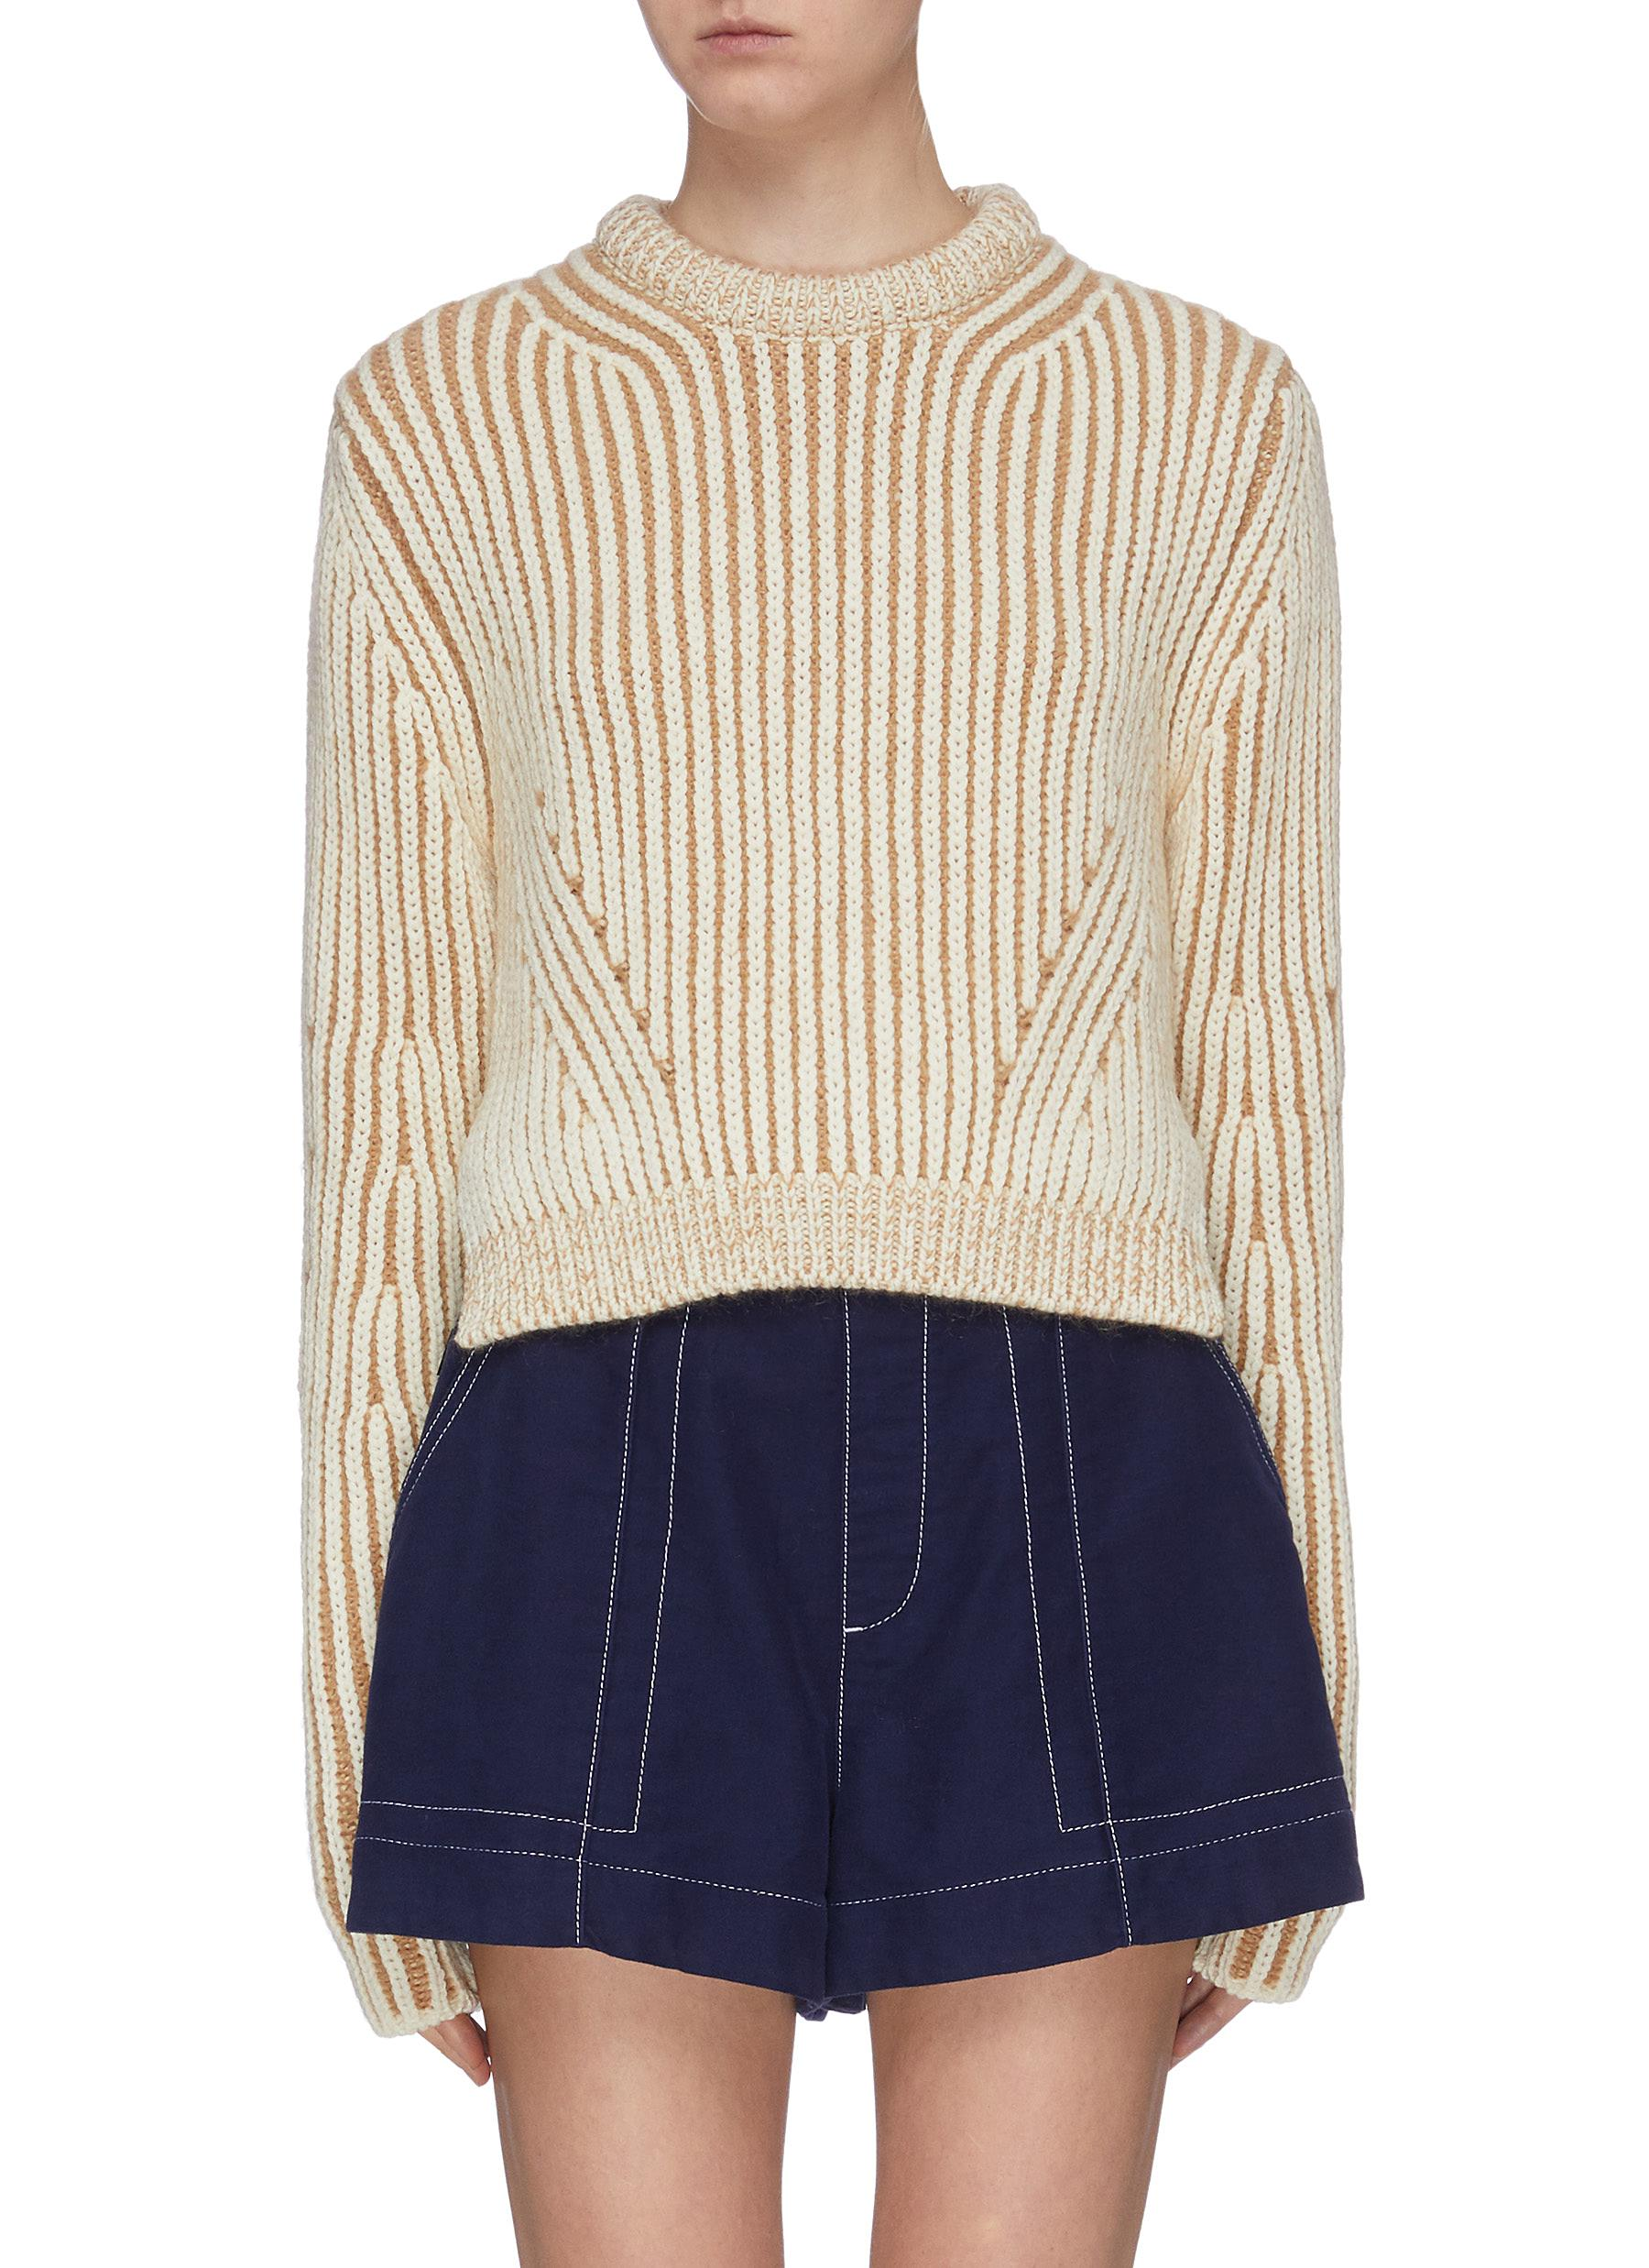 Chunky sweater by Chloé